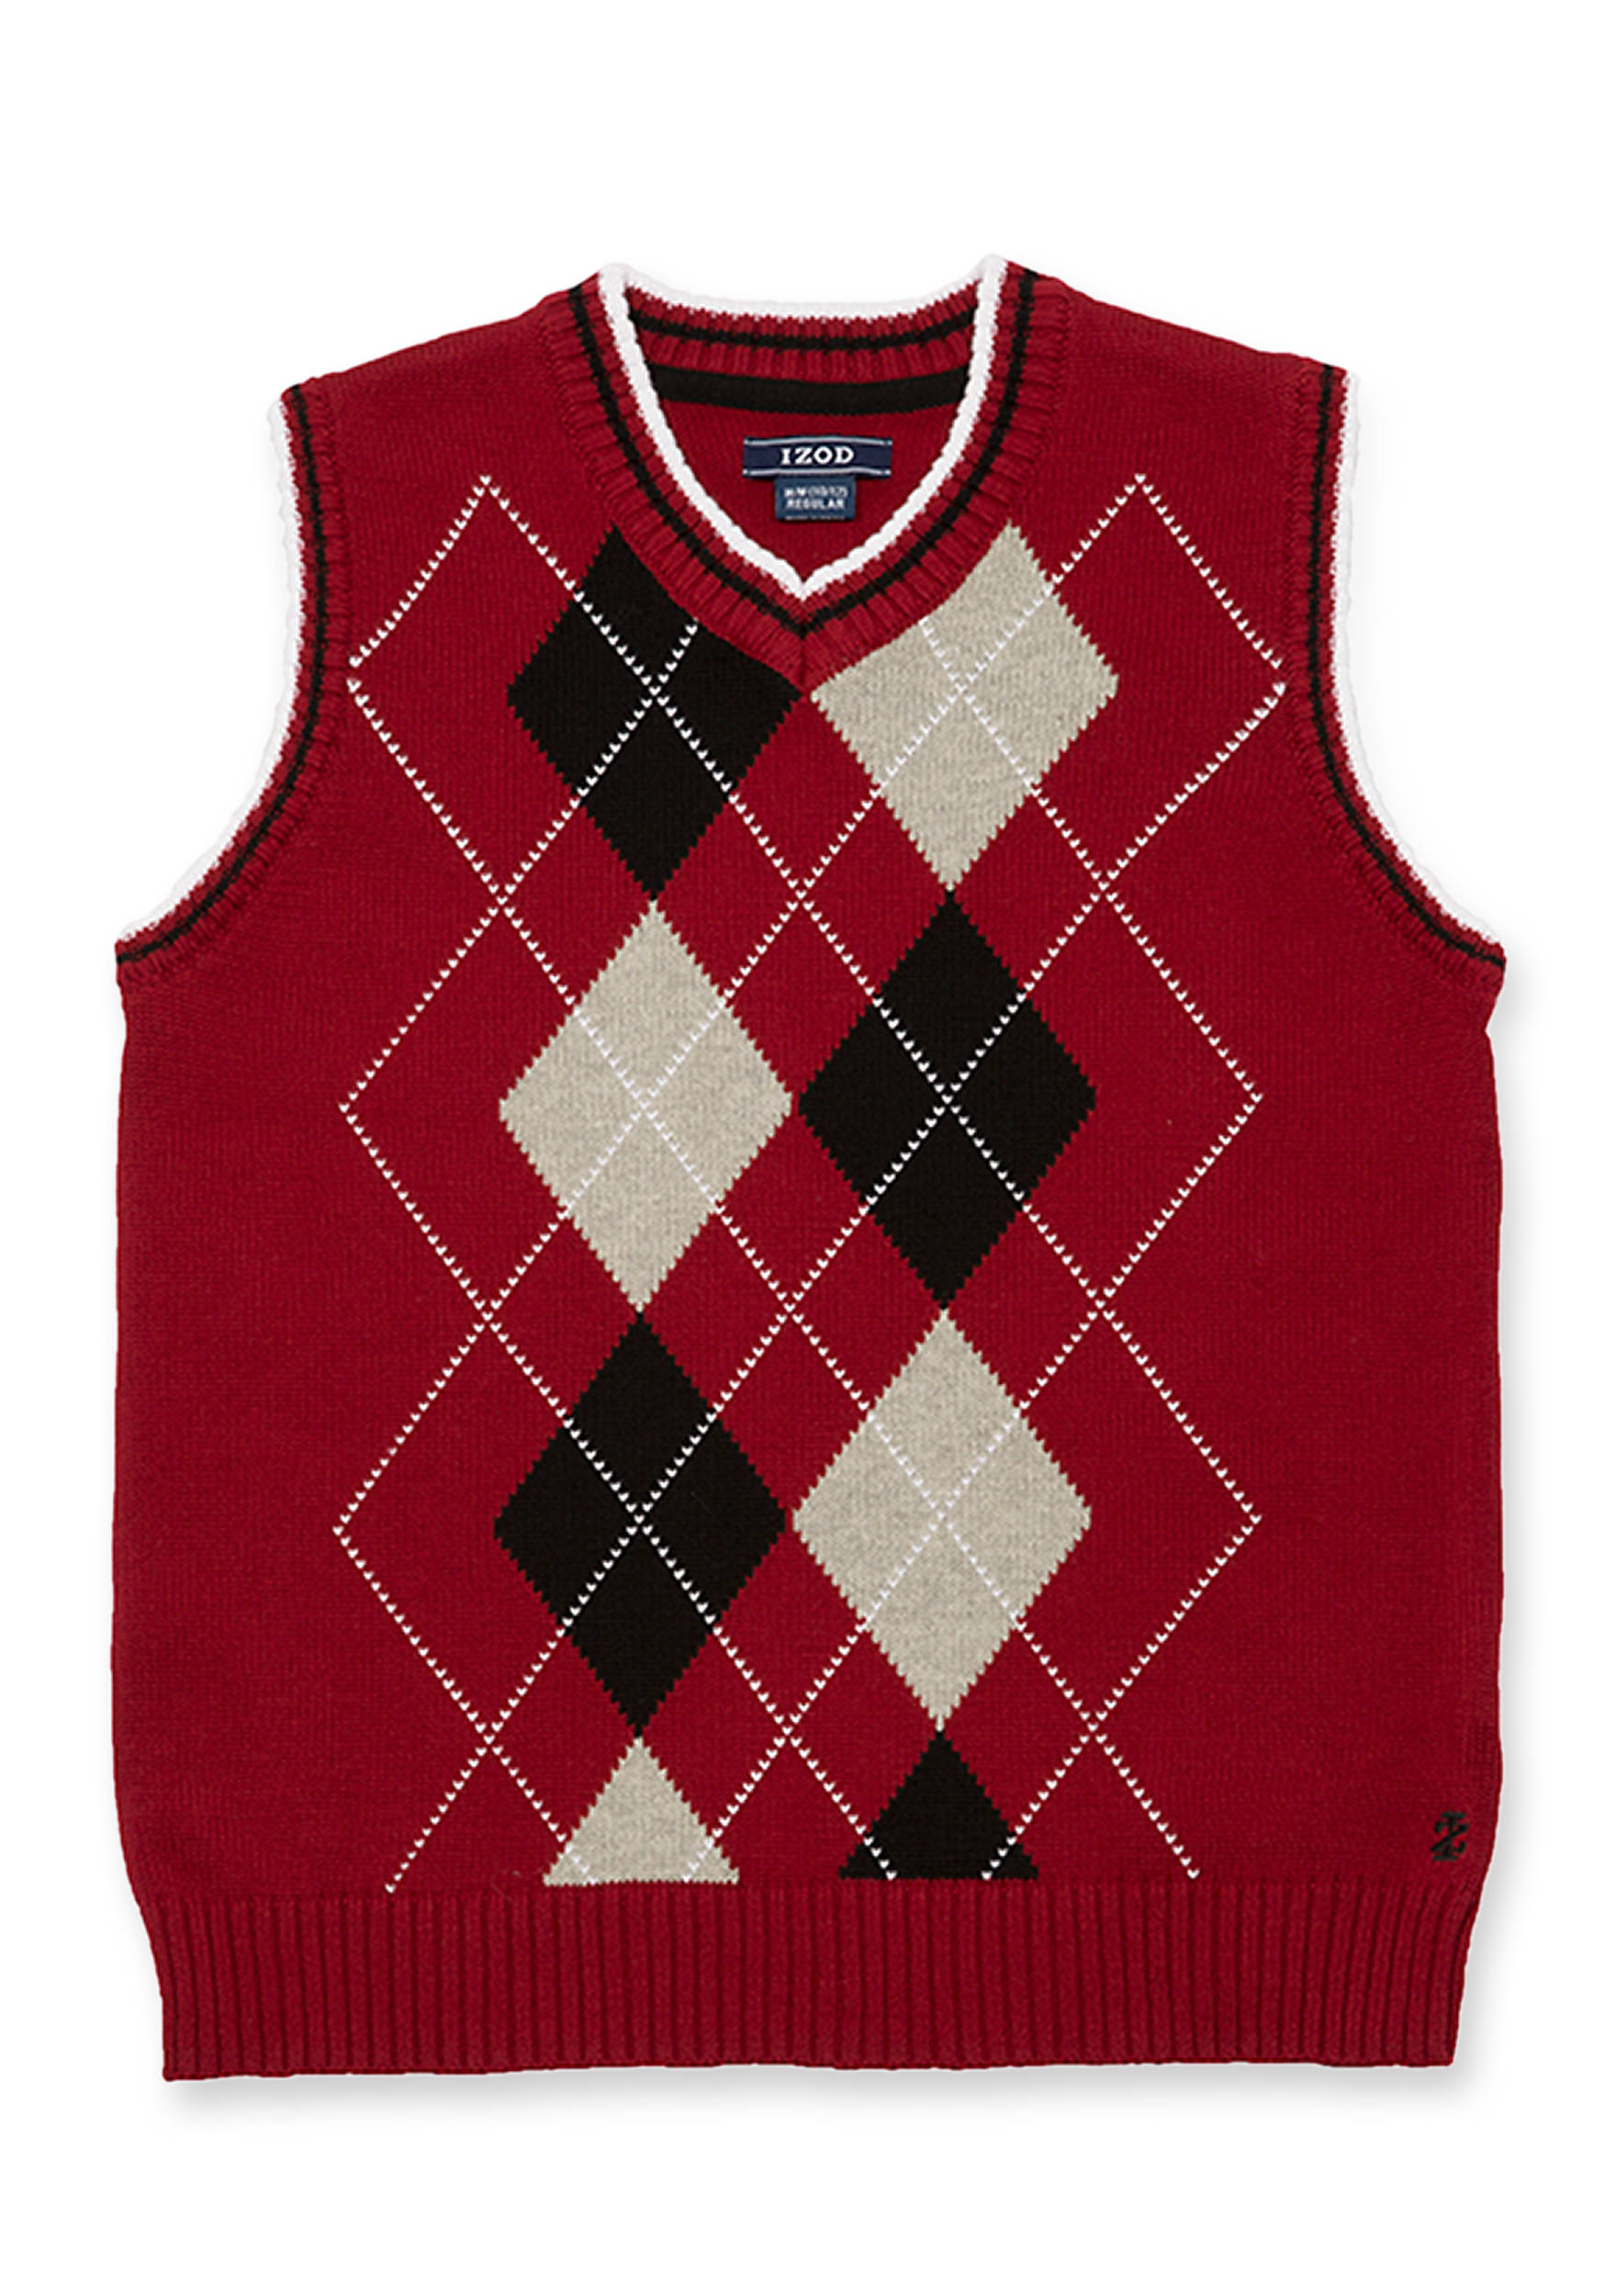 IZOD Boys 4-7 Red Argyle Sweater Vest | belk